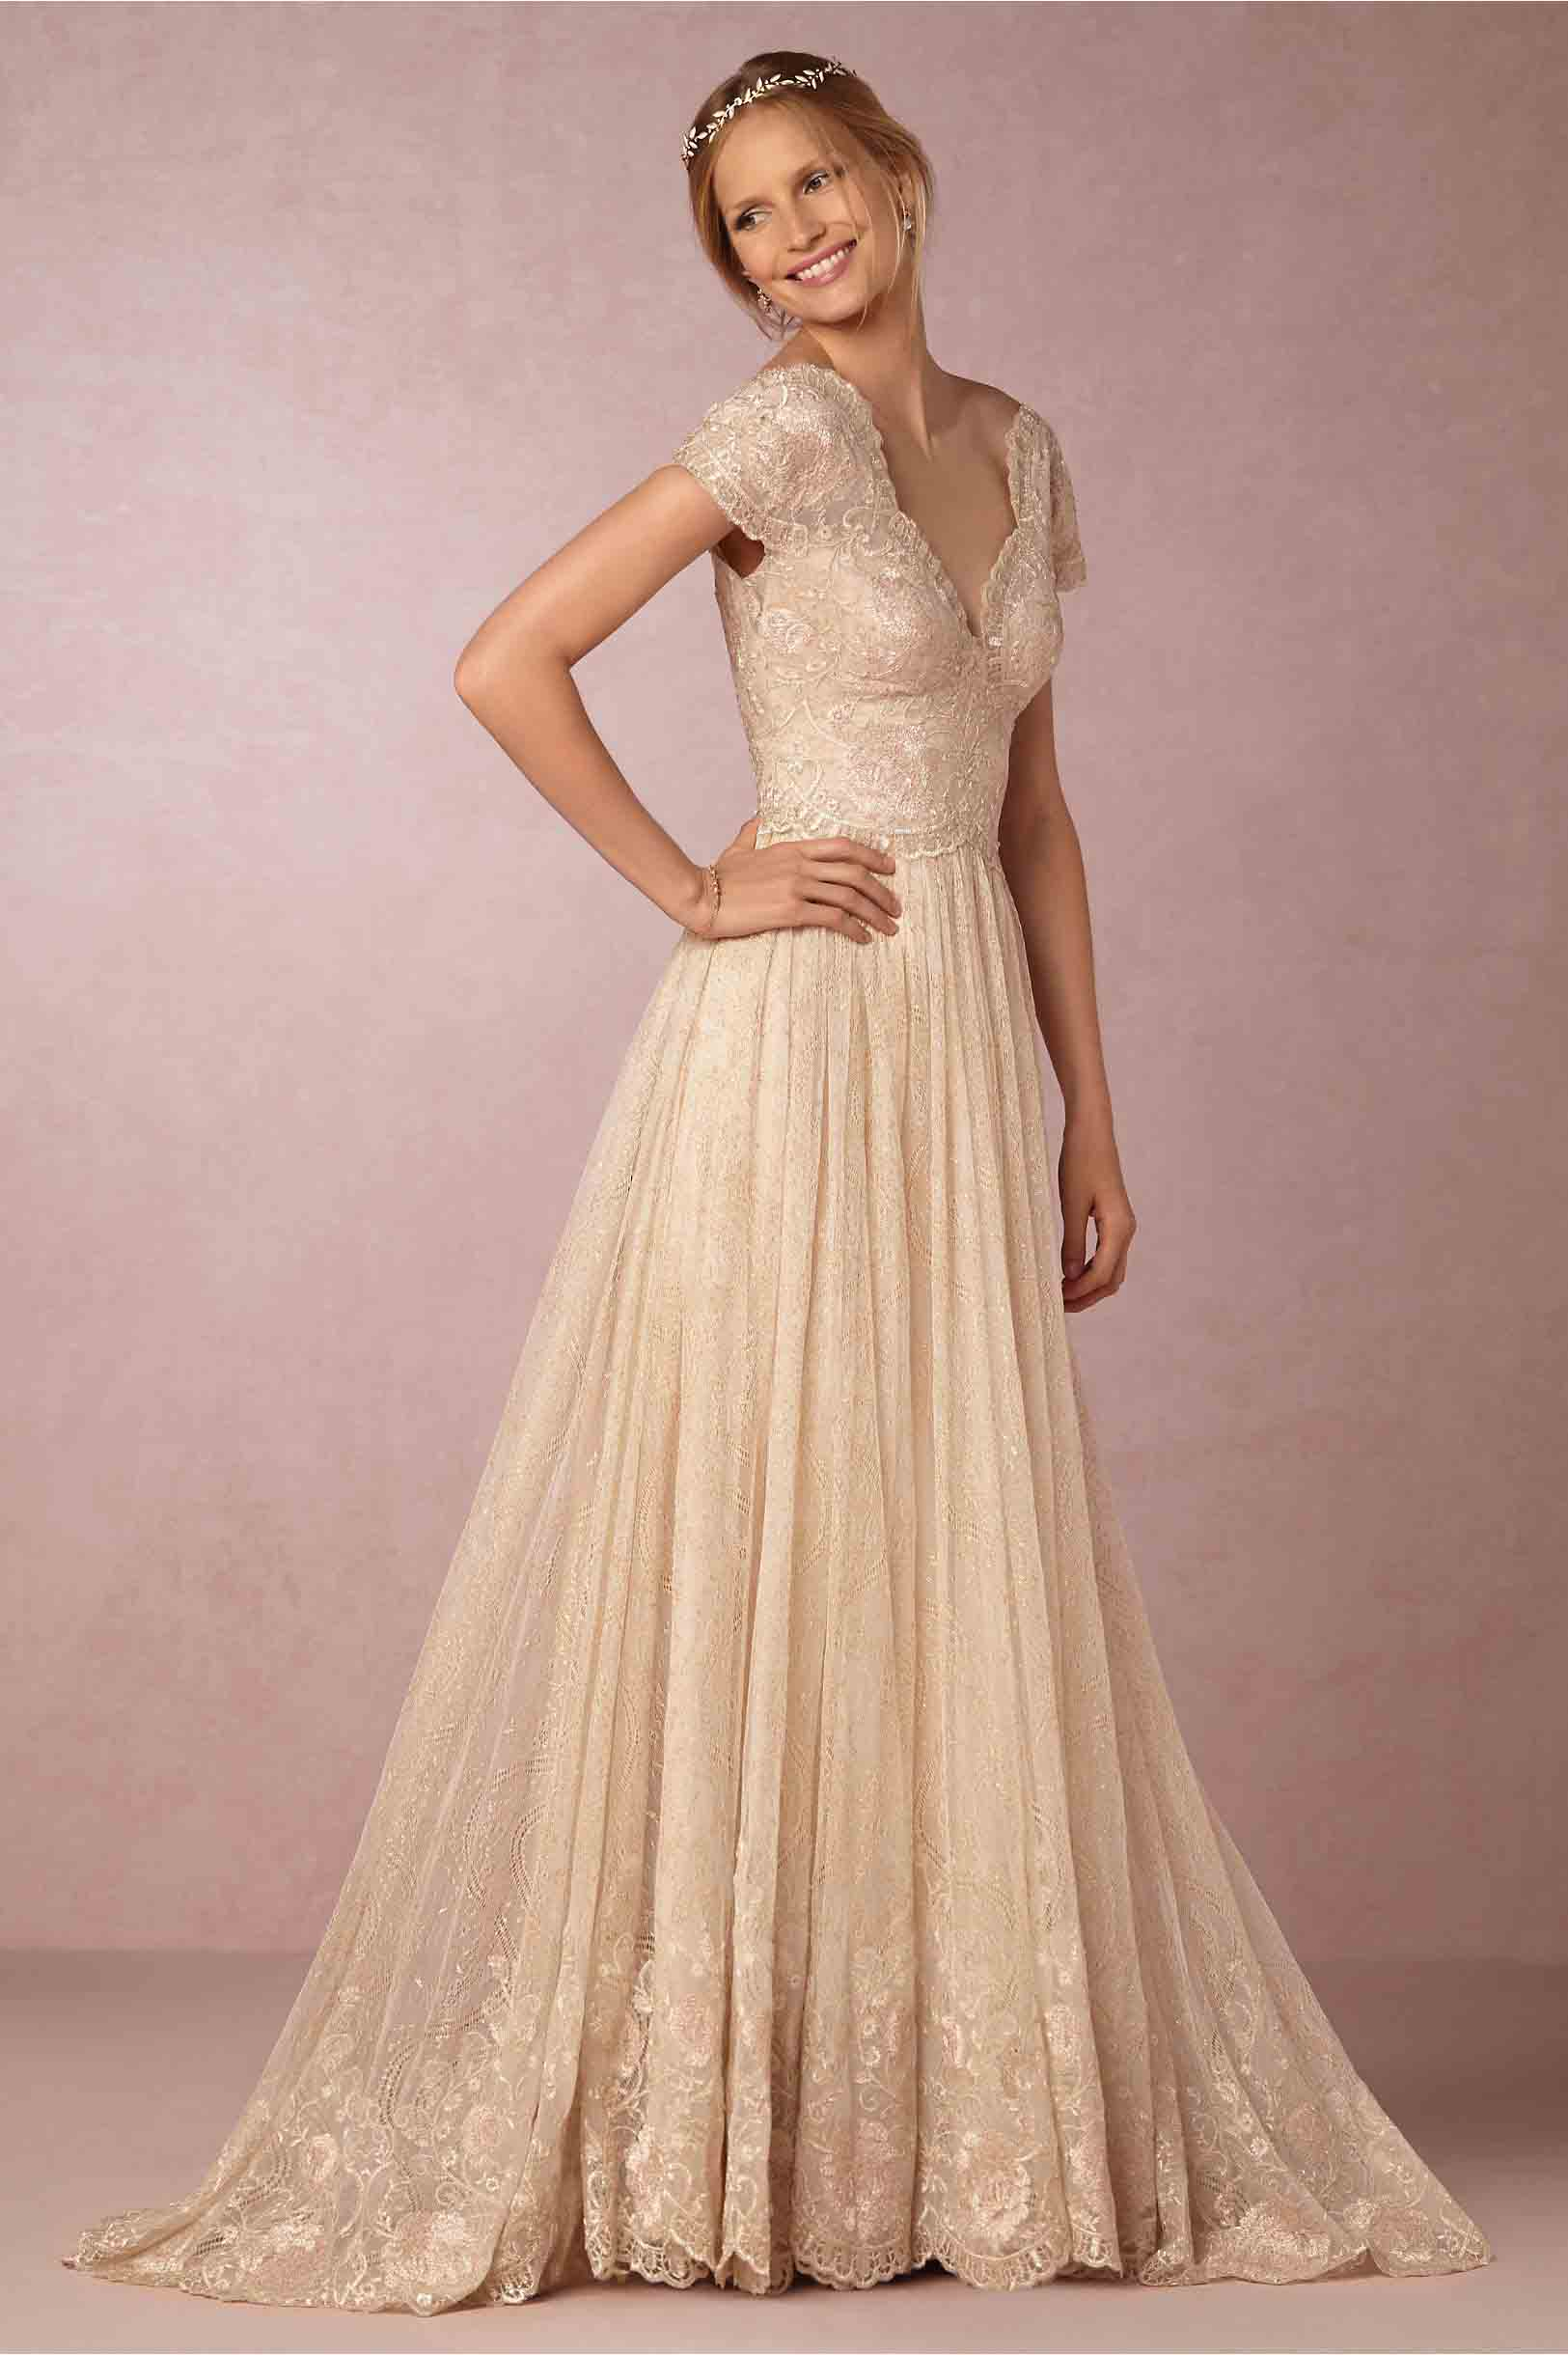 Classic Sleeved Wedding Gown